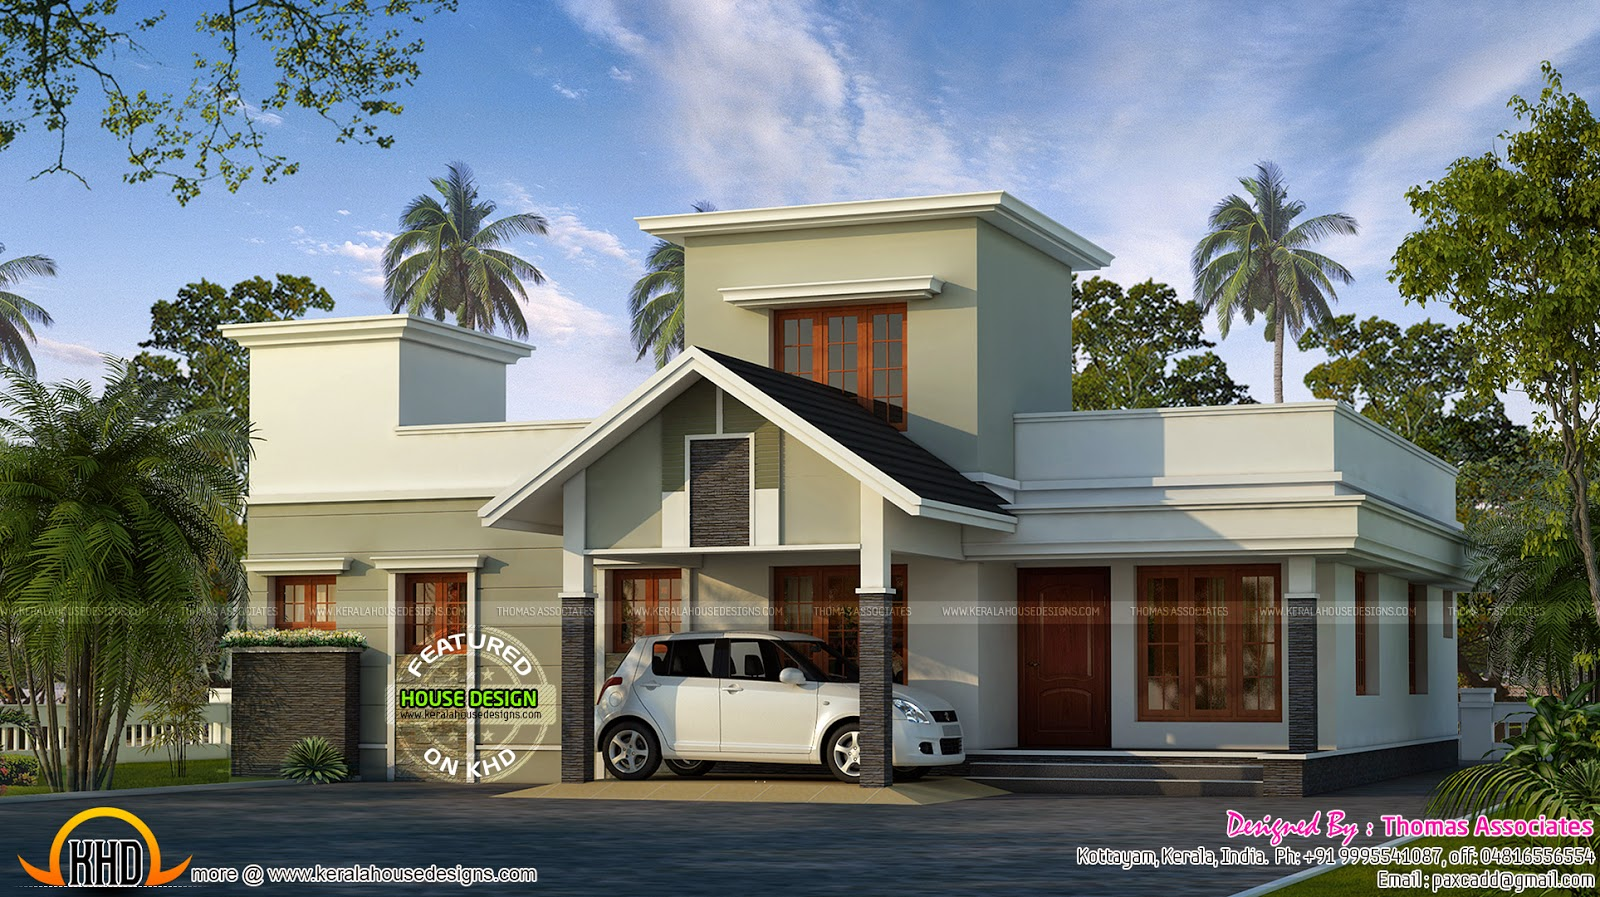 mid budget house plan kerala home design and floor plans On middle class house plans with photos